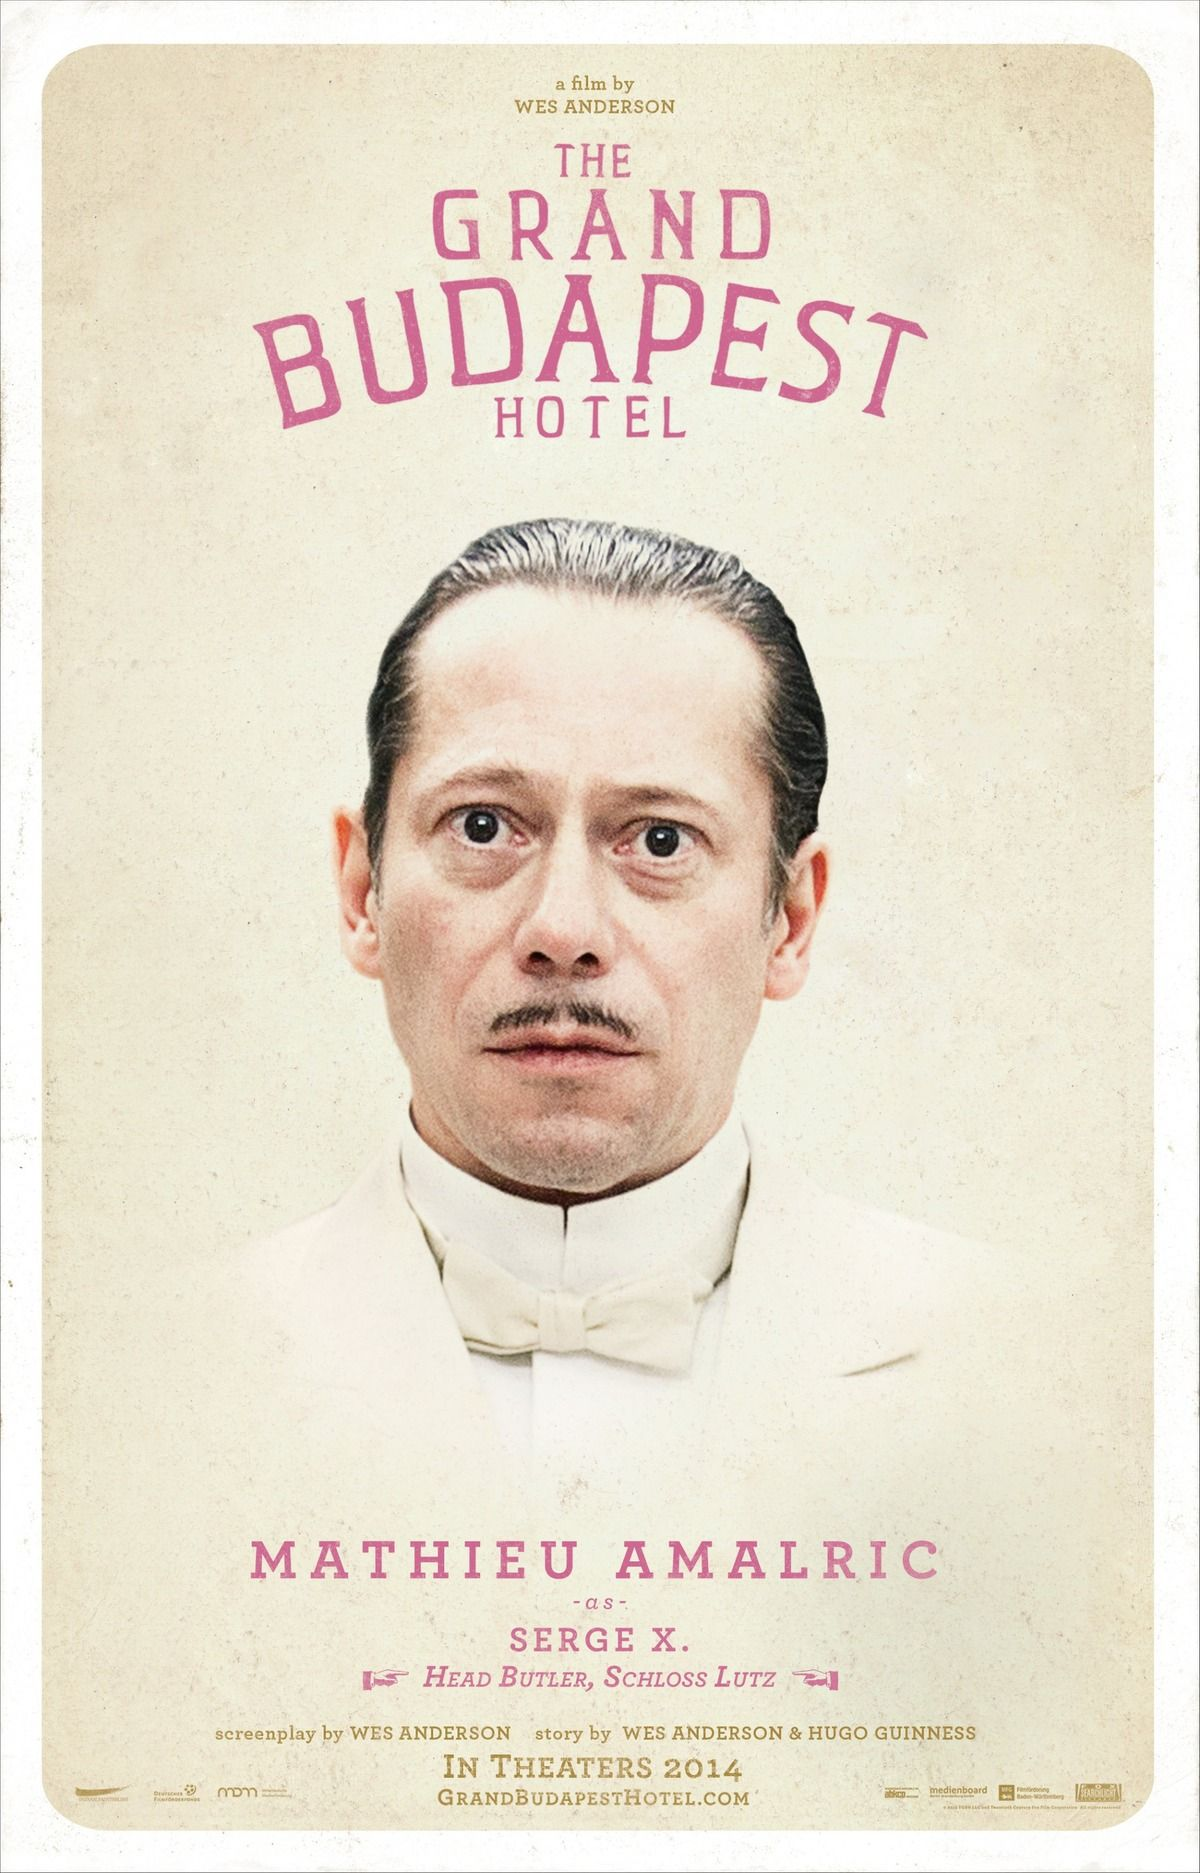 grand budapest hotel spices up movie posters spotify   grand budapest hotel spices up movie posters spotify playlists